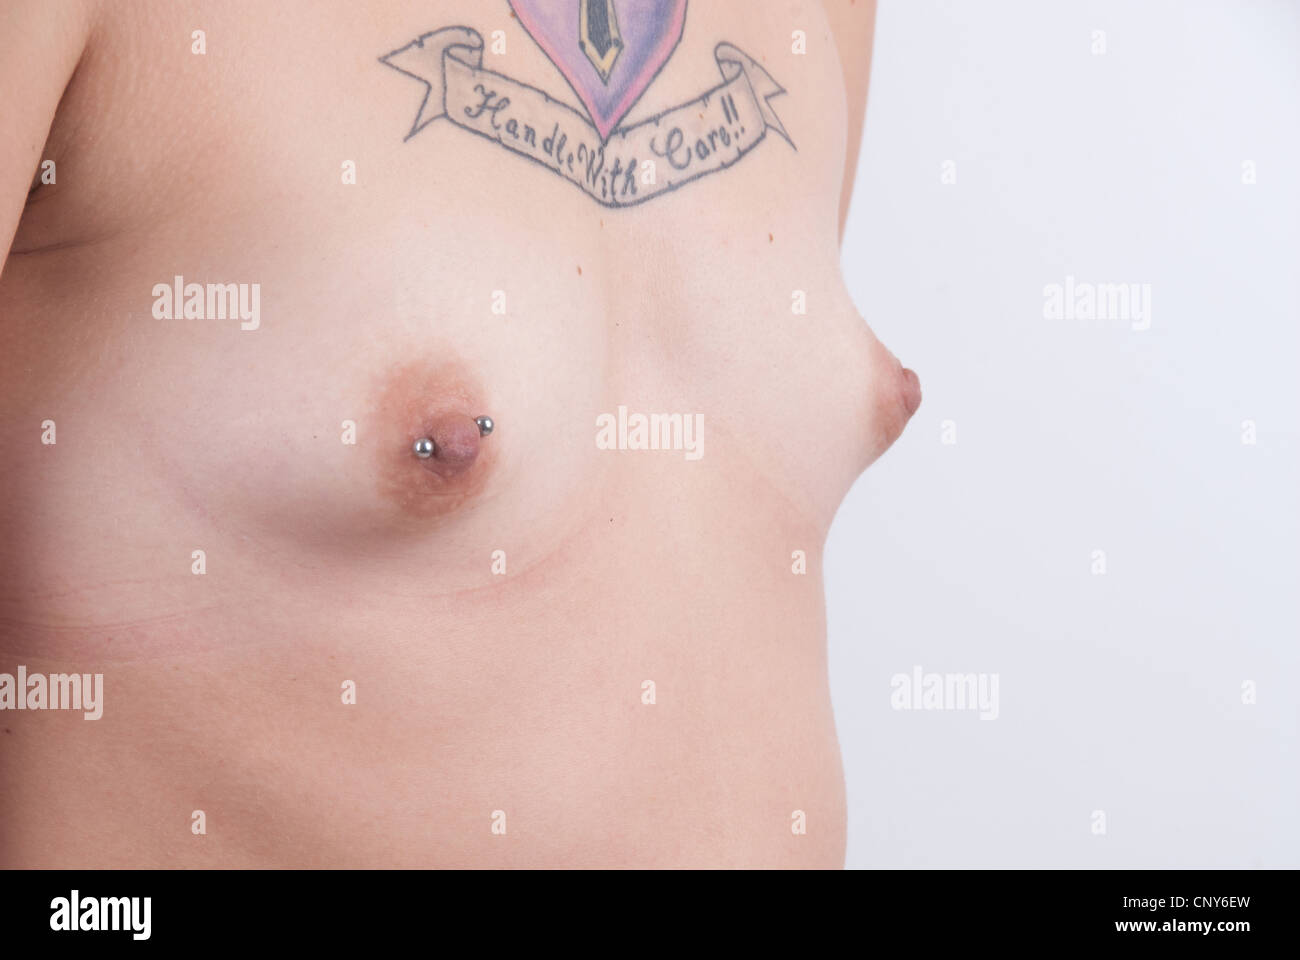 nude caucasian female chest showing small breasts with pierced